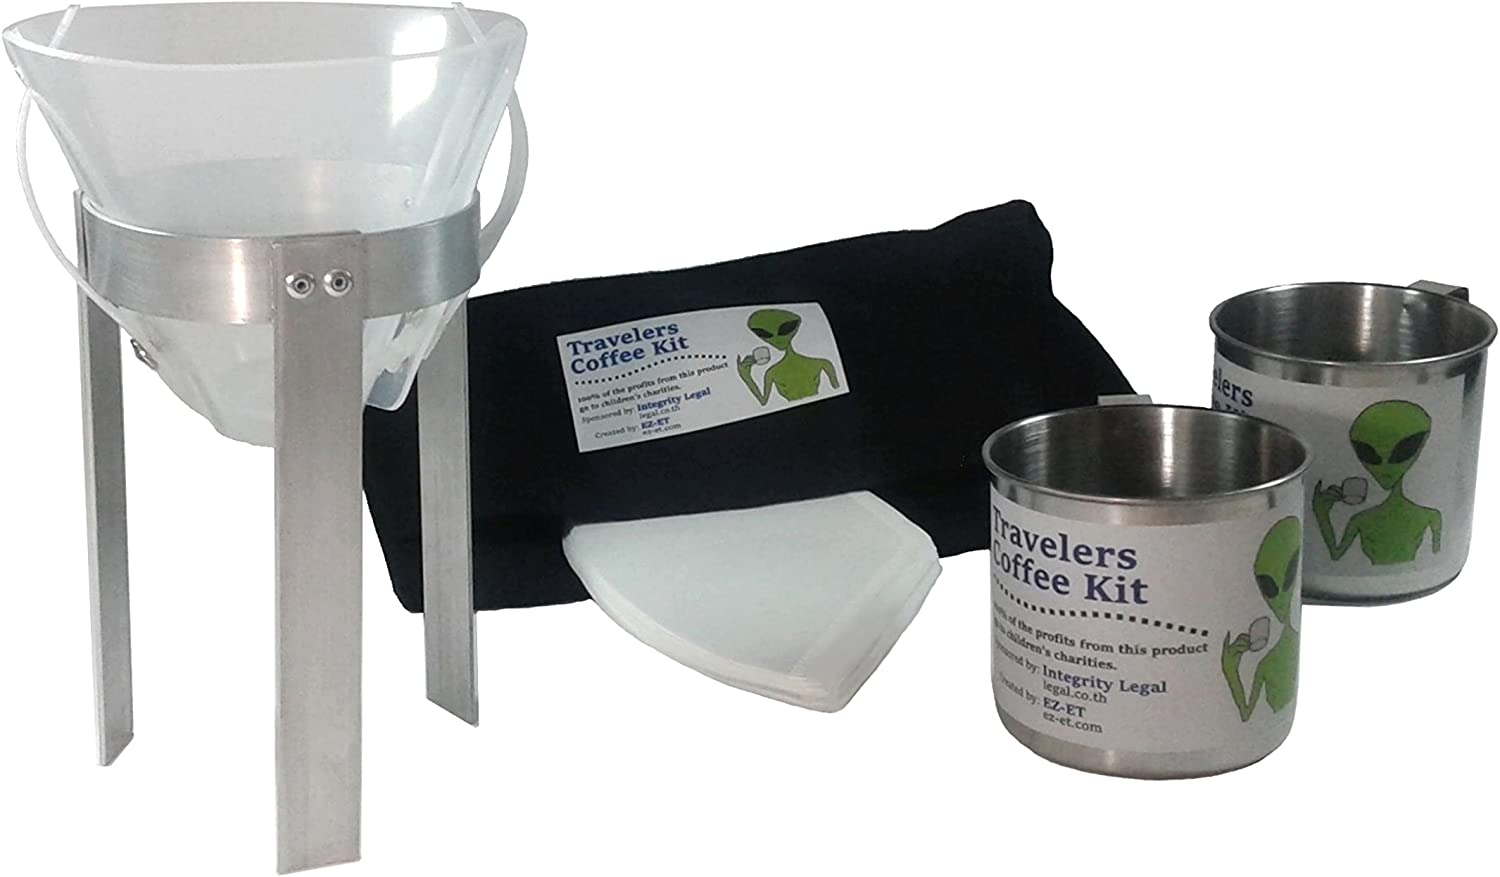 Travelers Coffee Kit (Pour Over Coffee Maker  Portable, Lightweight, Compact, Durable, for Camping, Backpackers, Nomads, Ethical Aliens Charity  Economical  for Home and Hotel Coffee Alternative)